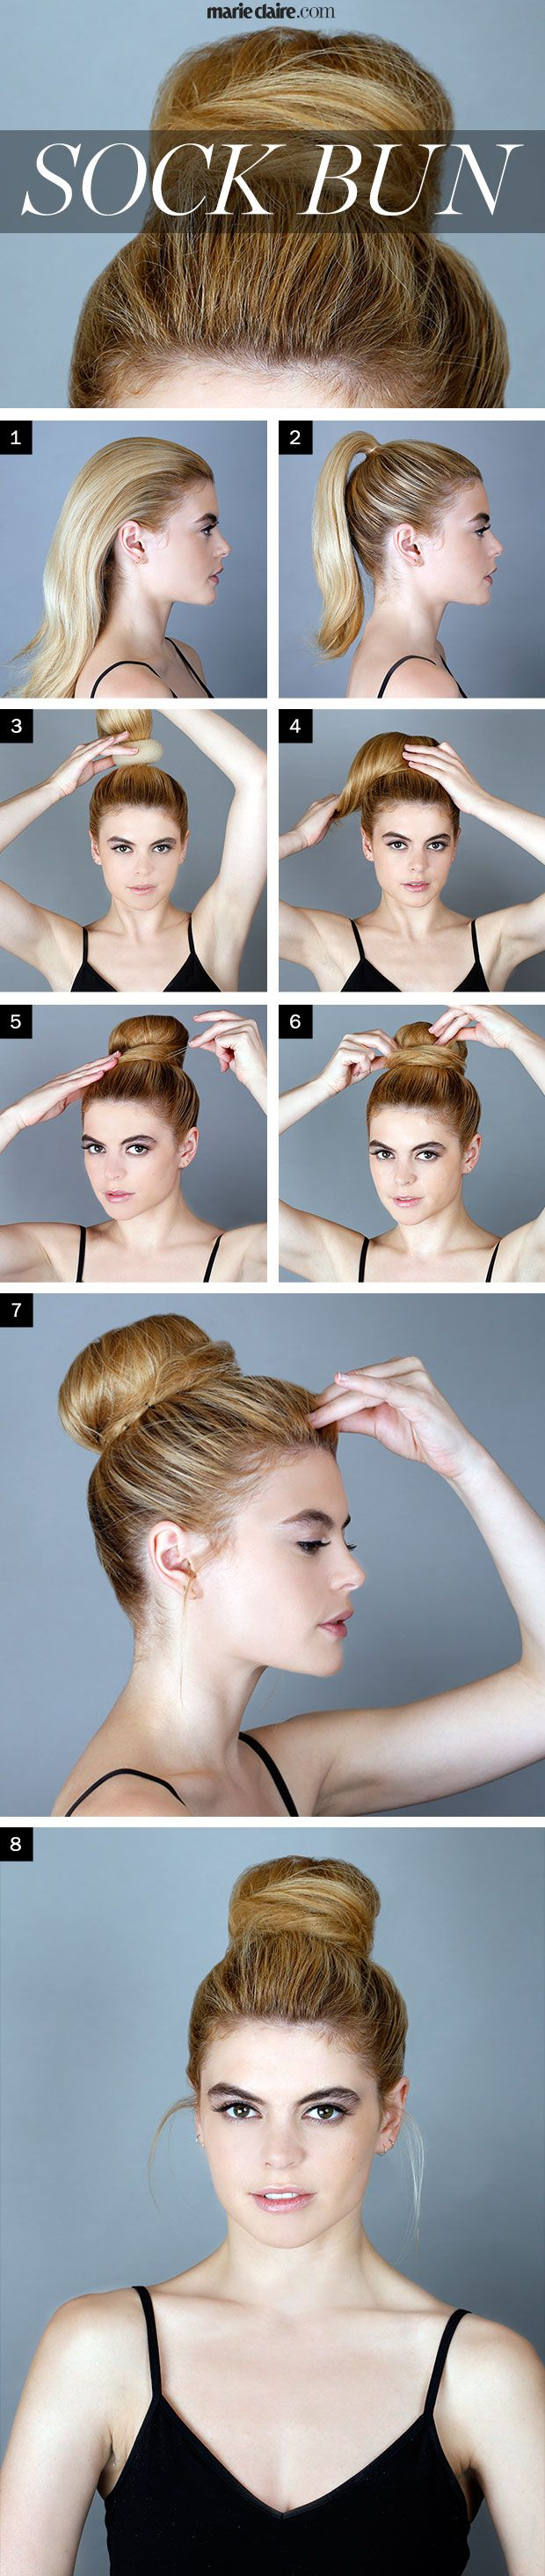 Sock Bun Tutorial  - Pro tips on using that foam doughnut in your hair. Learn how to do it easily     - If you like this pin, repin it and follow our boards :-)  #FastSimpleFitness - www.facebook.com/FastSimpleFitness